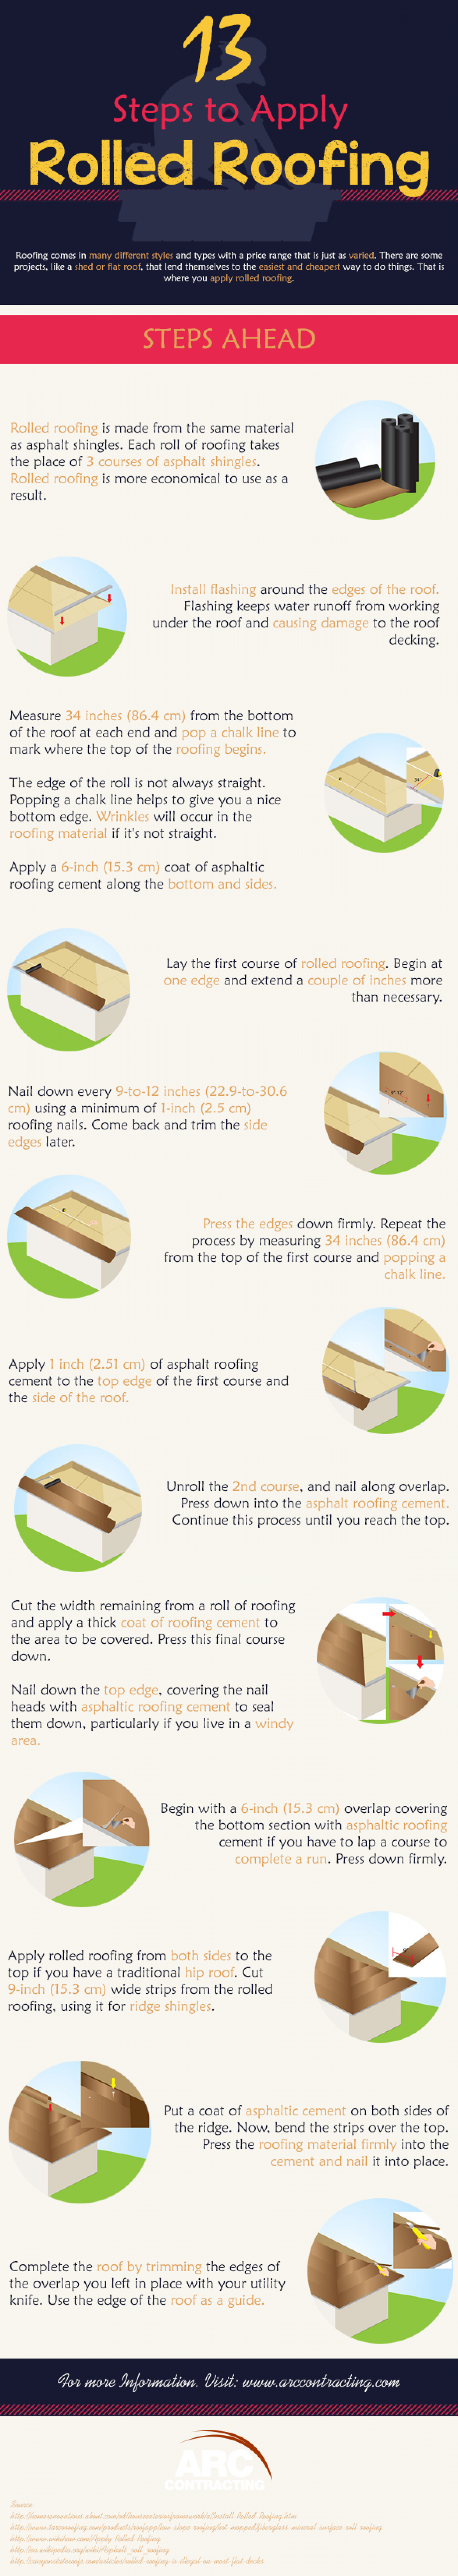 13 Steps to Apply Rolled Roofing Infographic